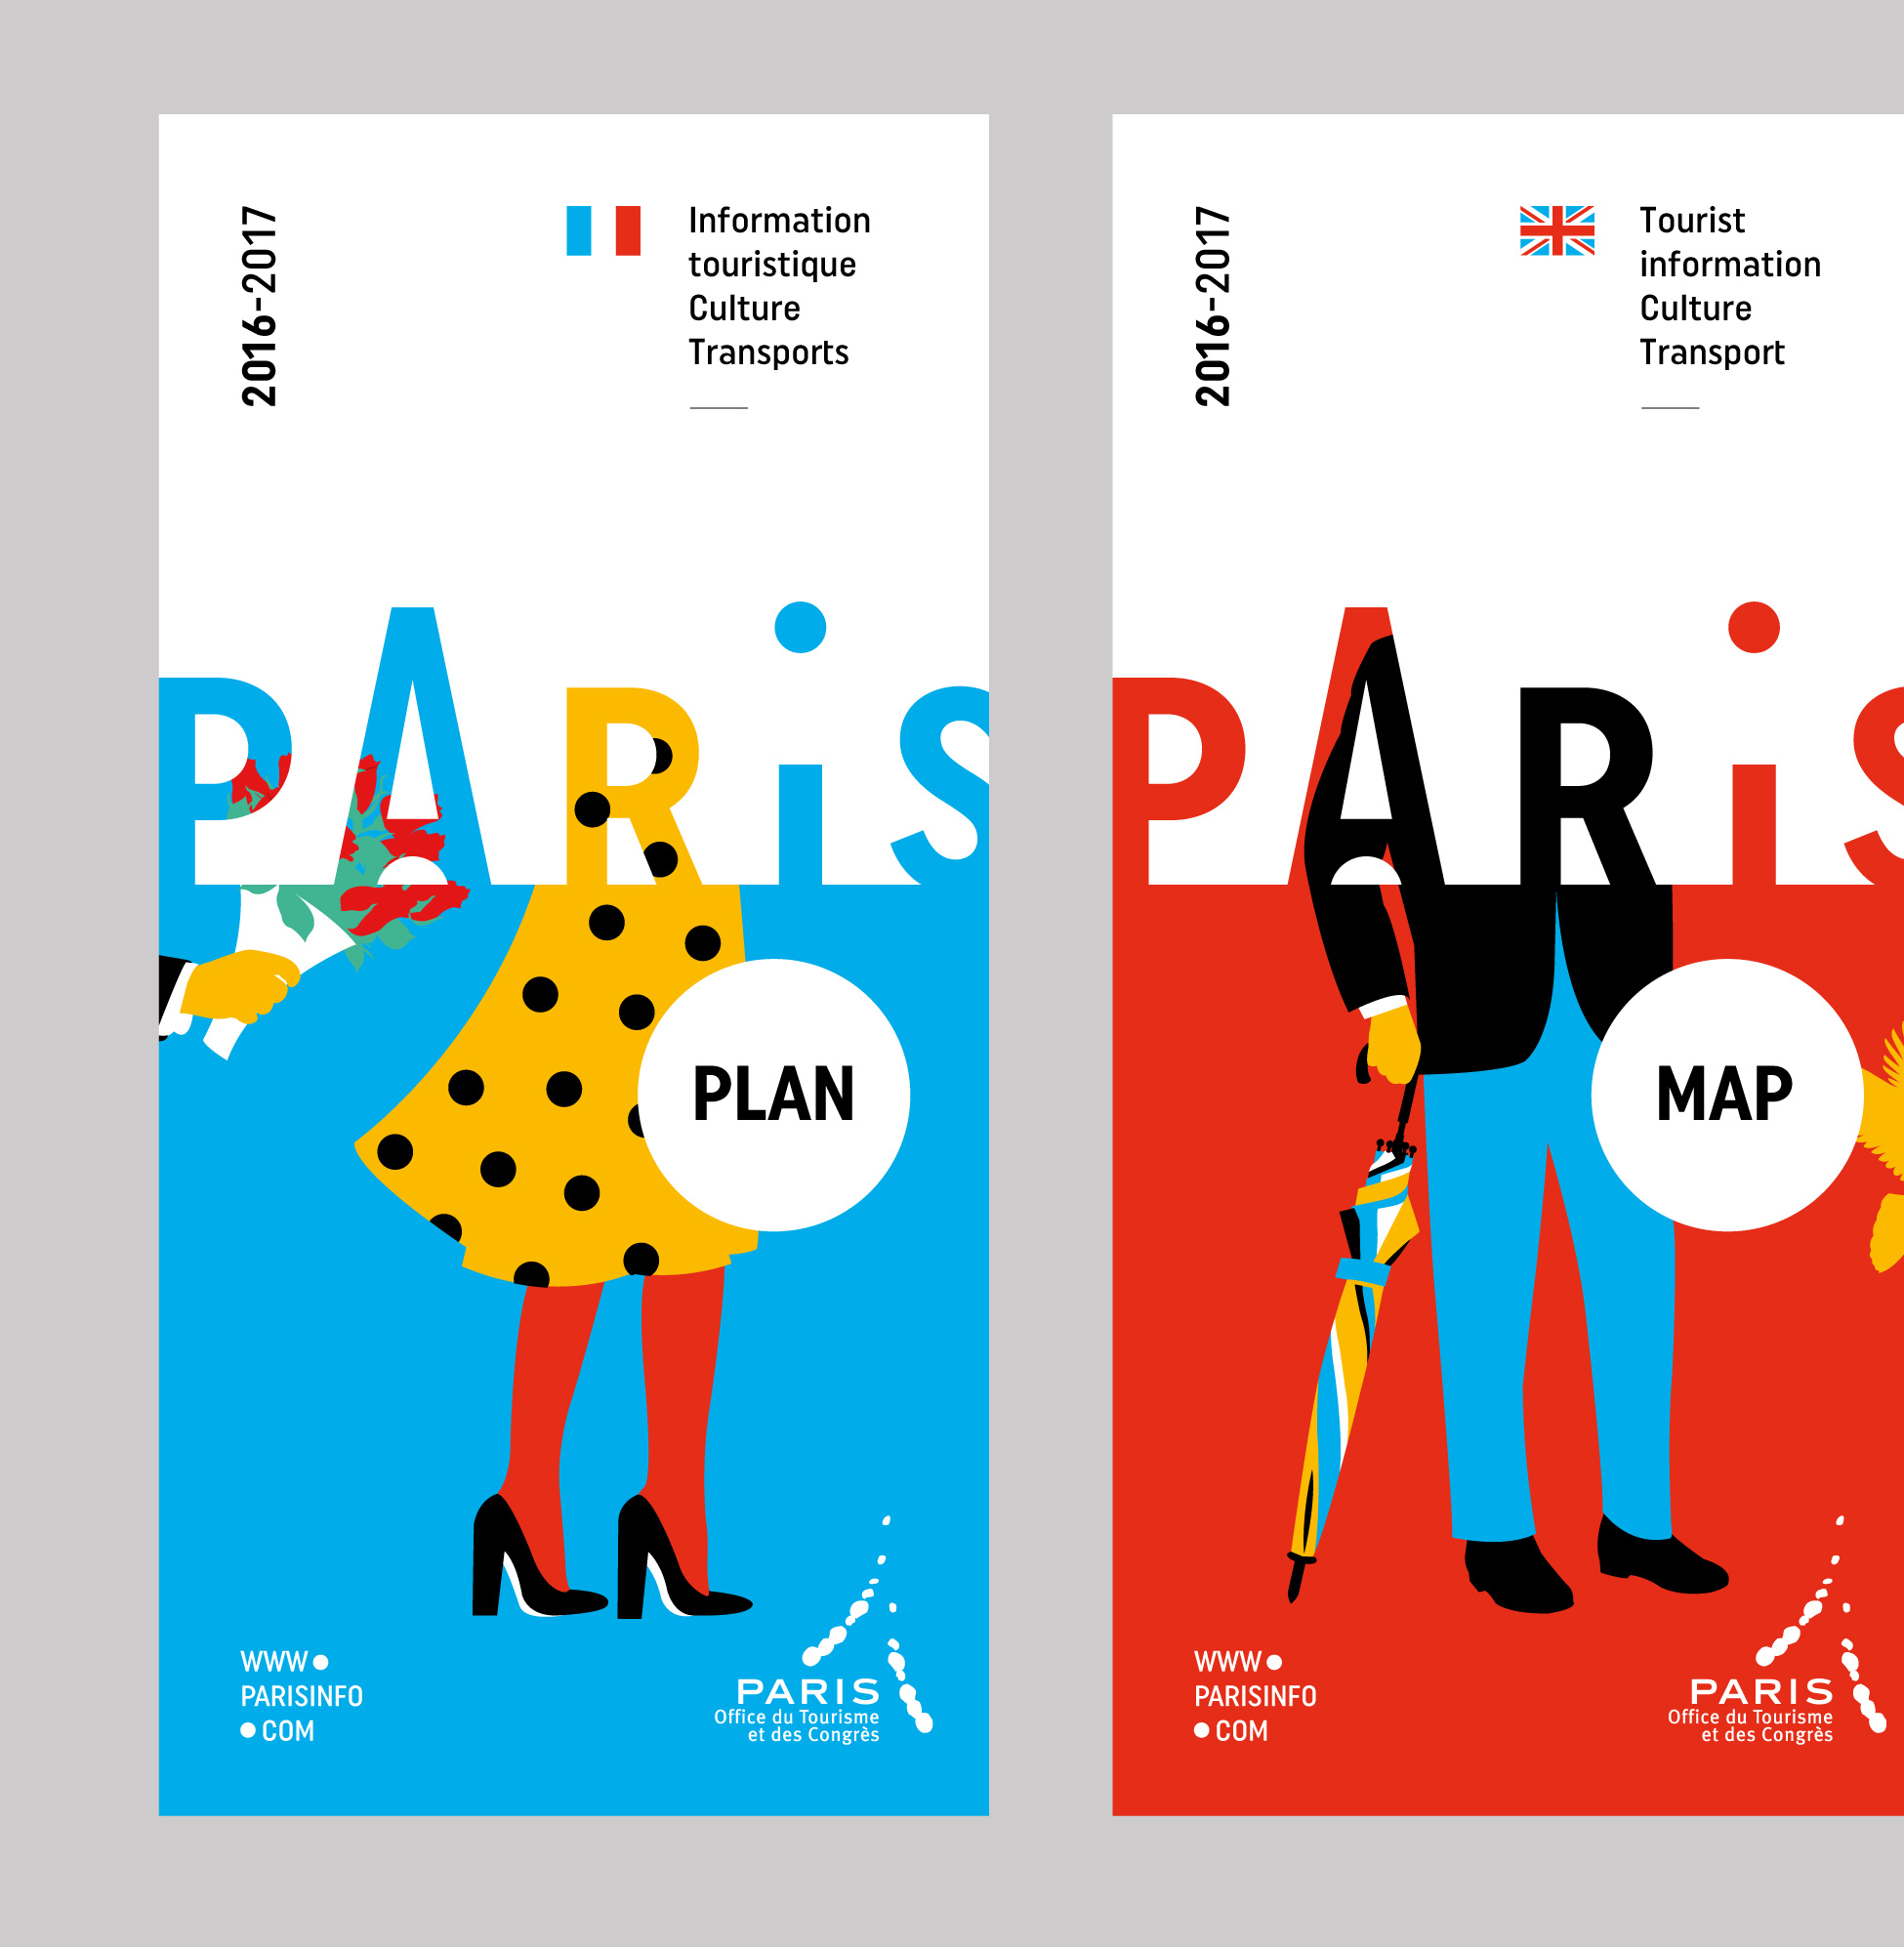 Paris Office Du Tourisme Paris Convention And Visitors Bureau Brand Design On Behance